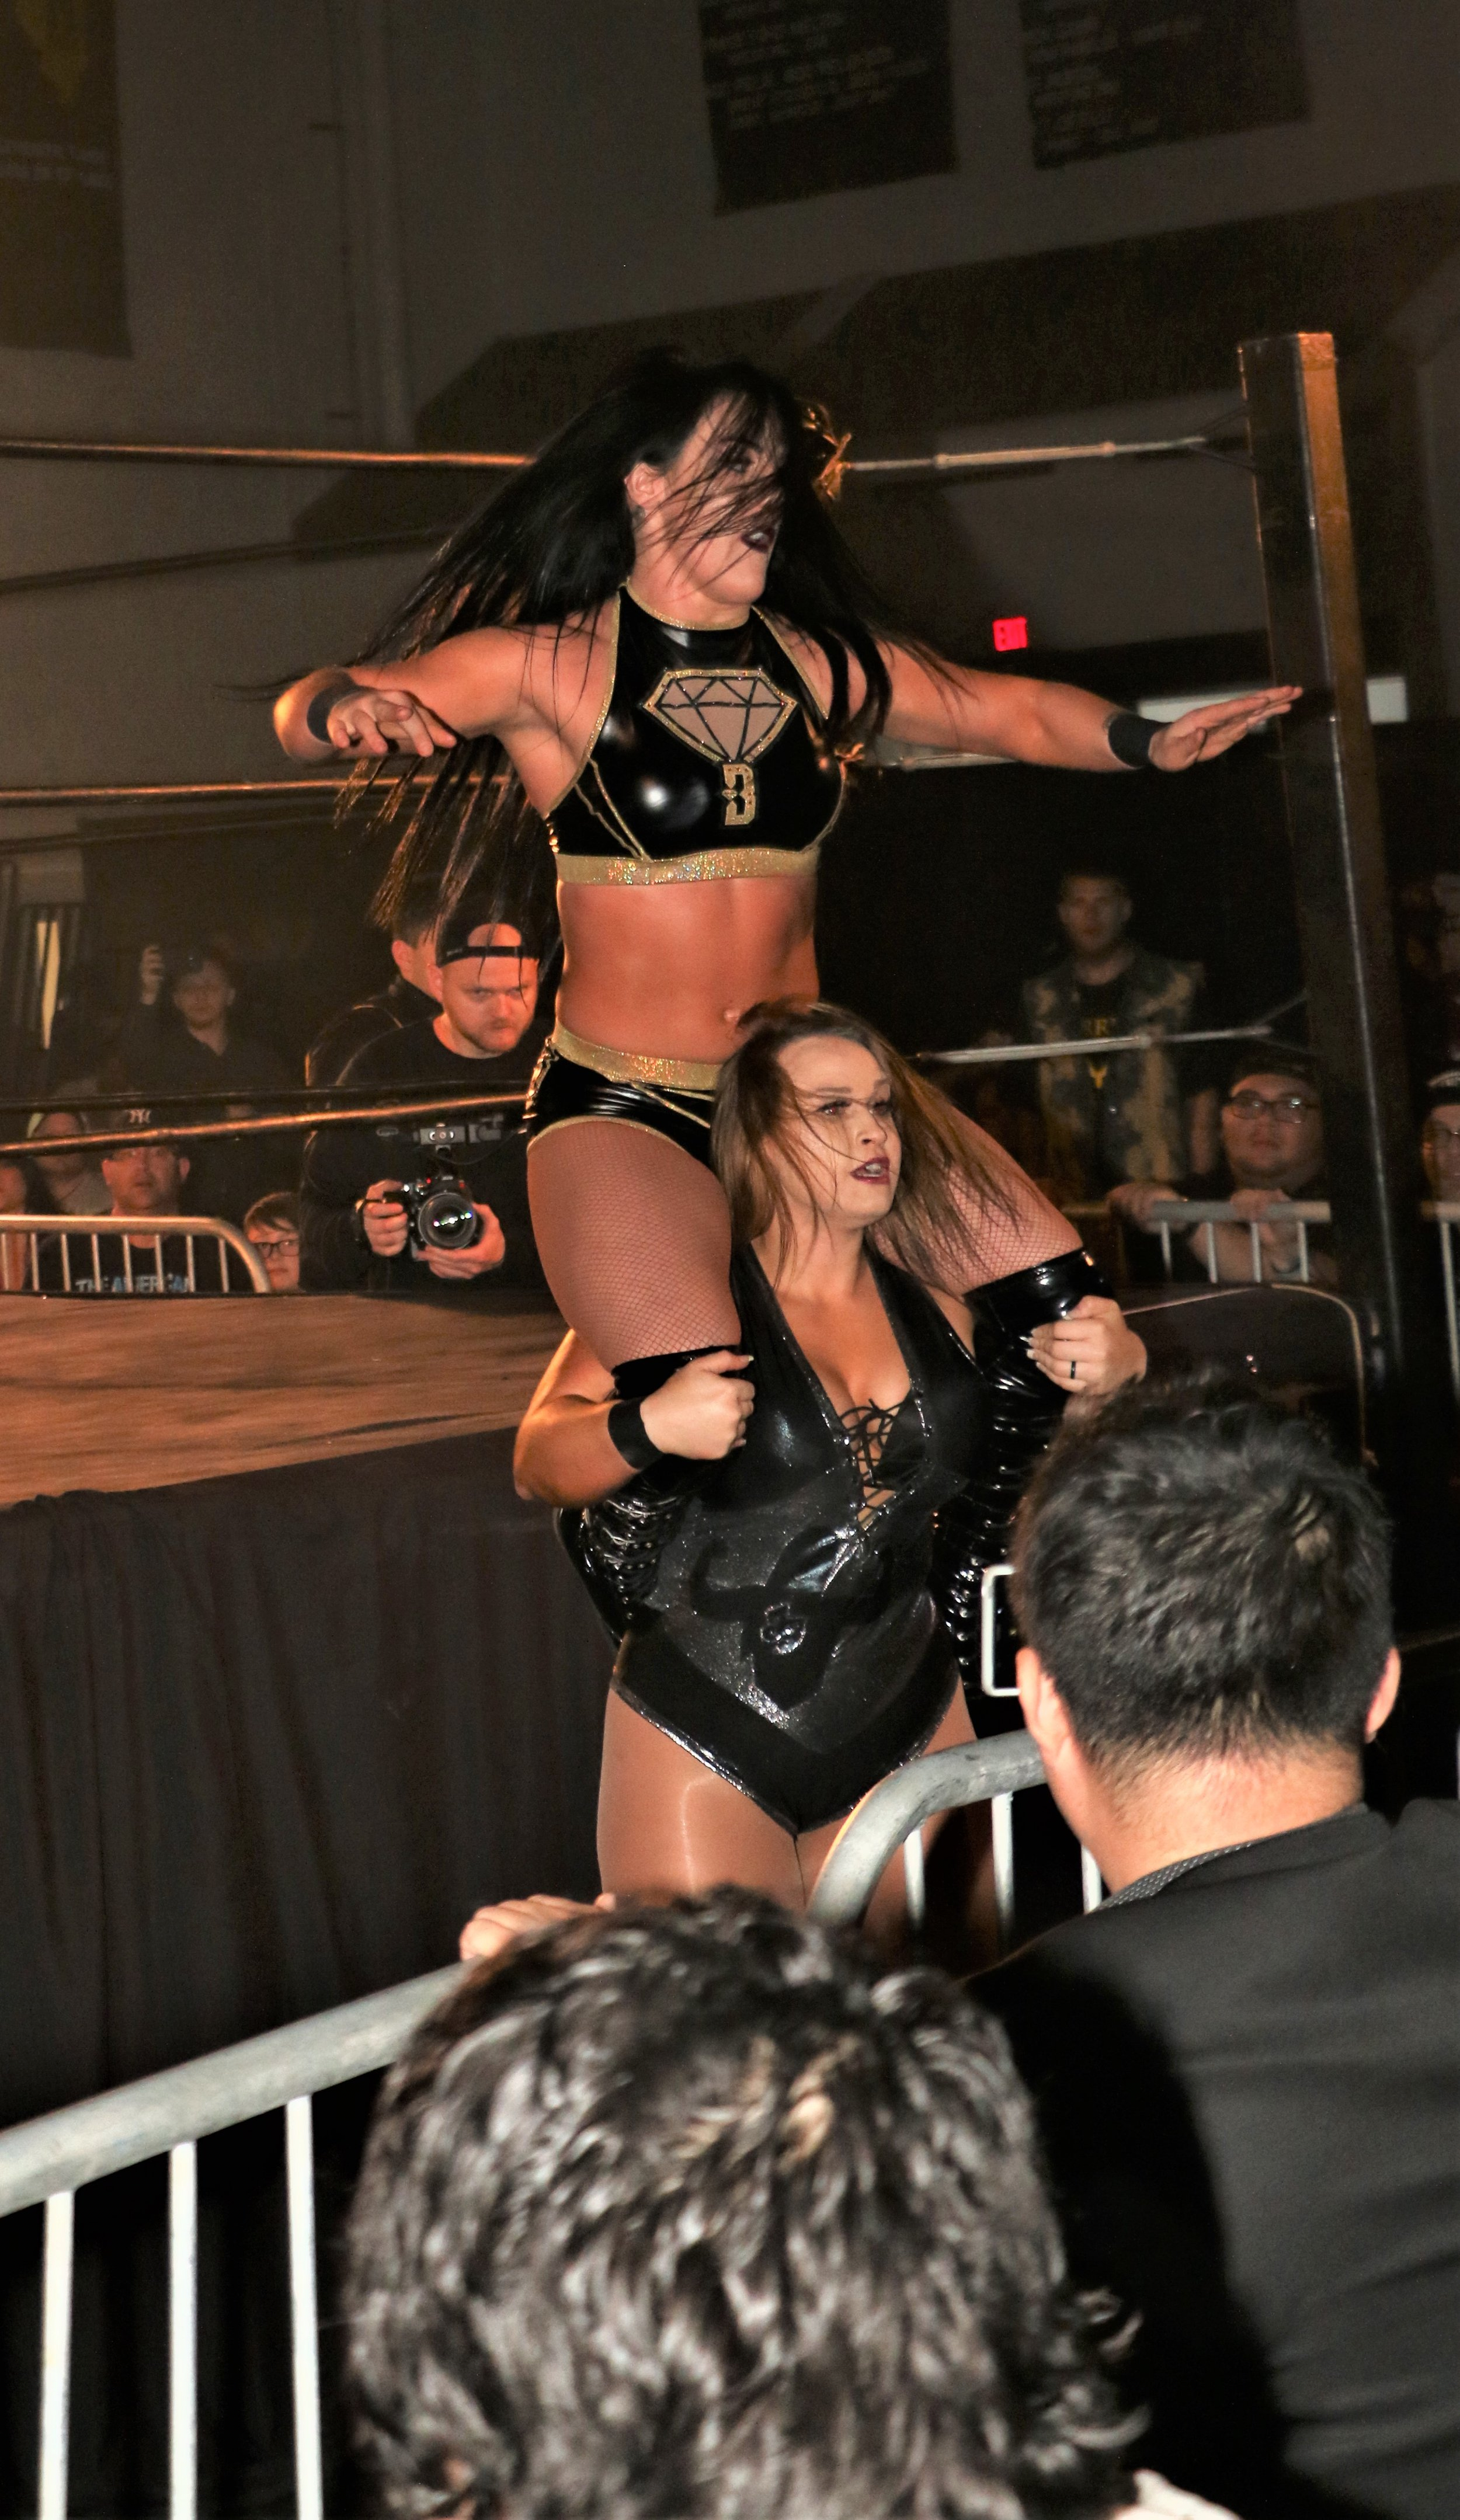 Jordynne Grace holds Tessa Blanchard up on her shoulders on the outside of the ring.